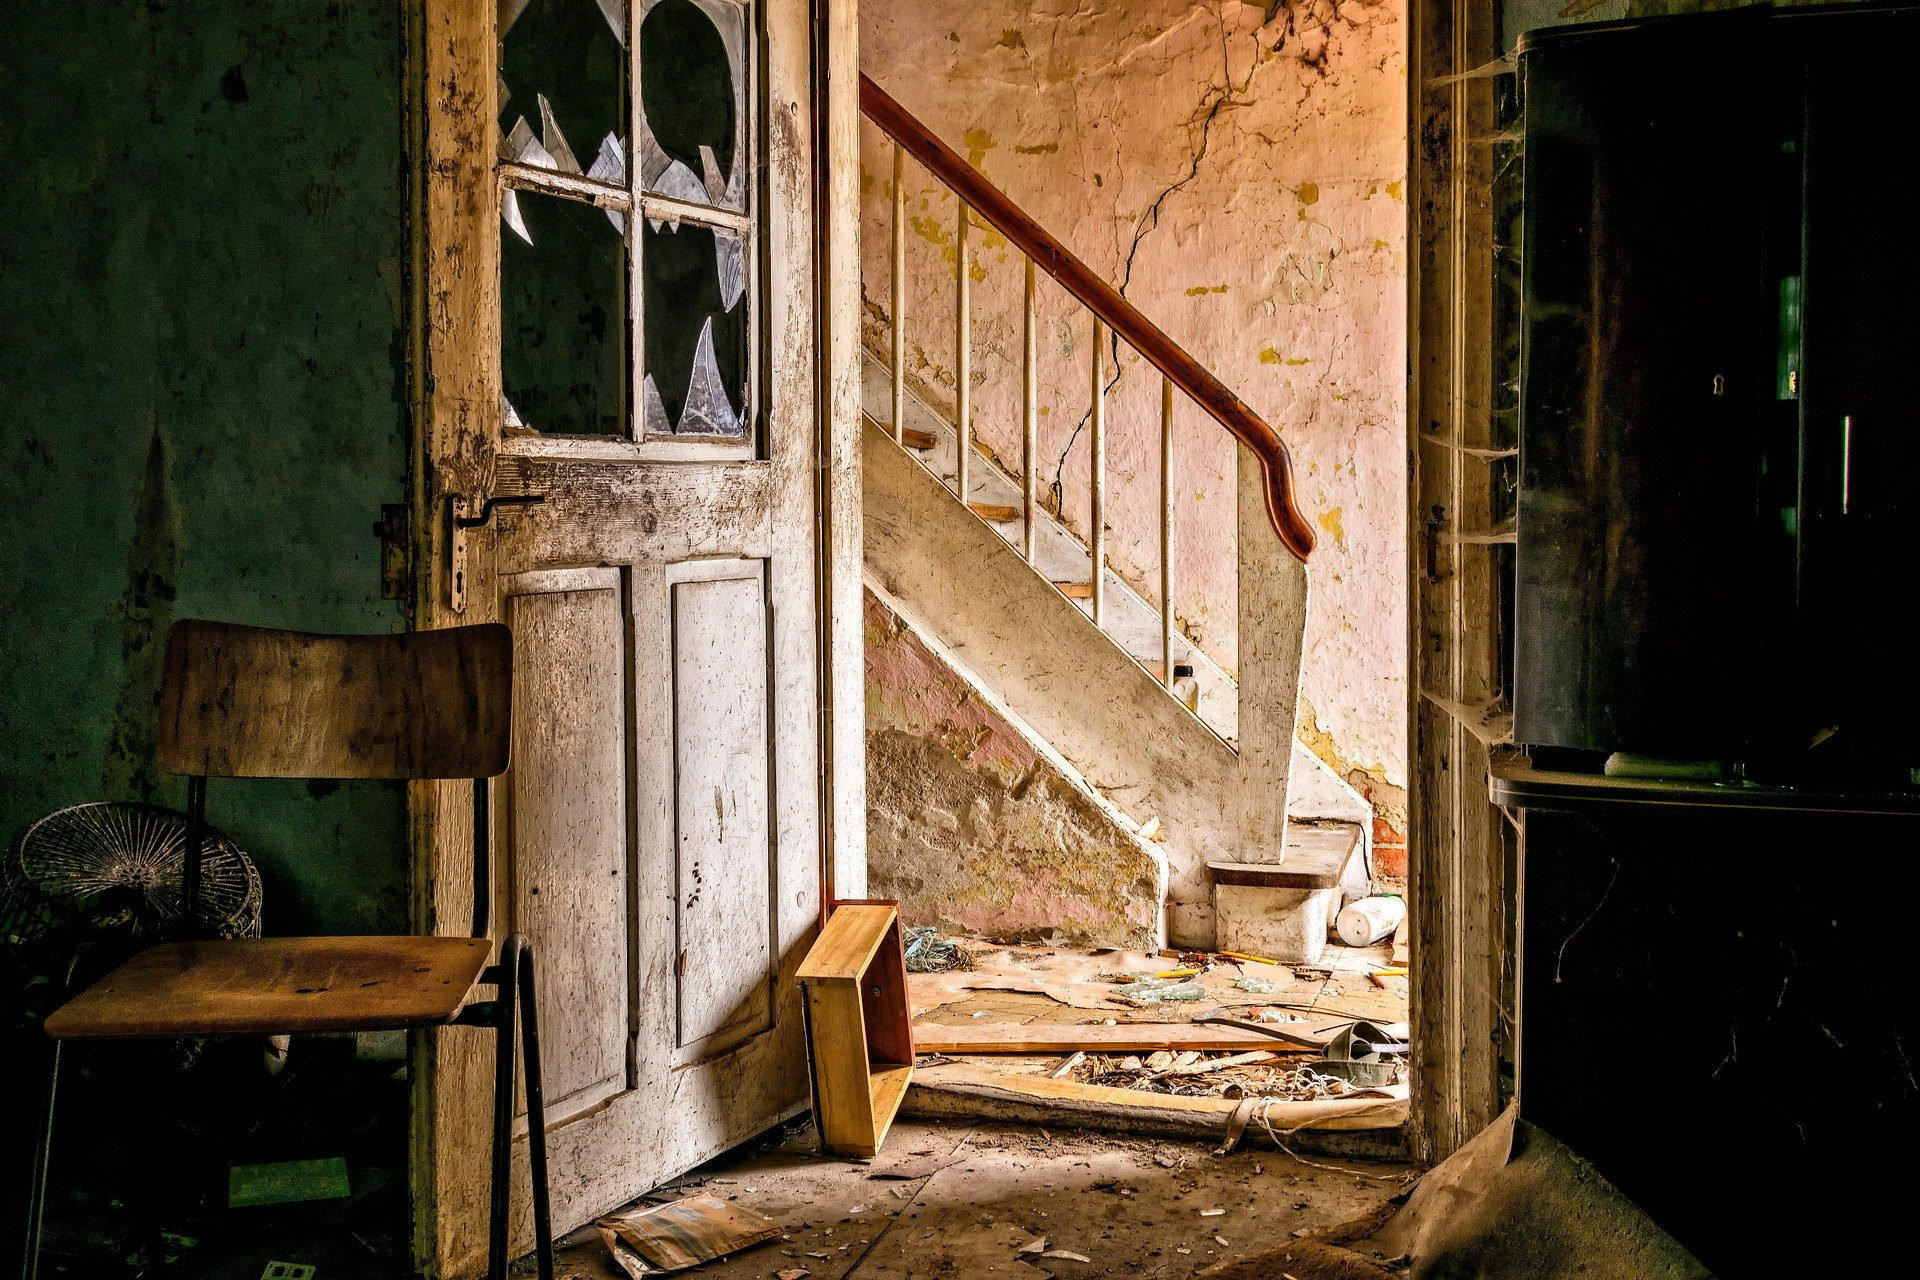 lost-places-3035877_1920 (1)